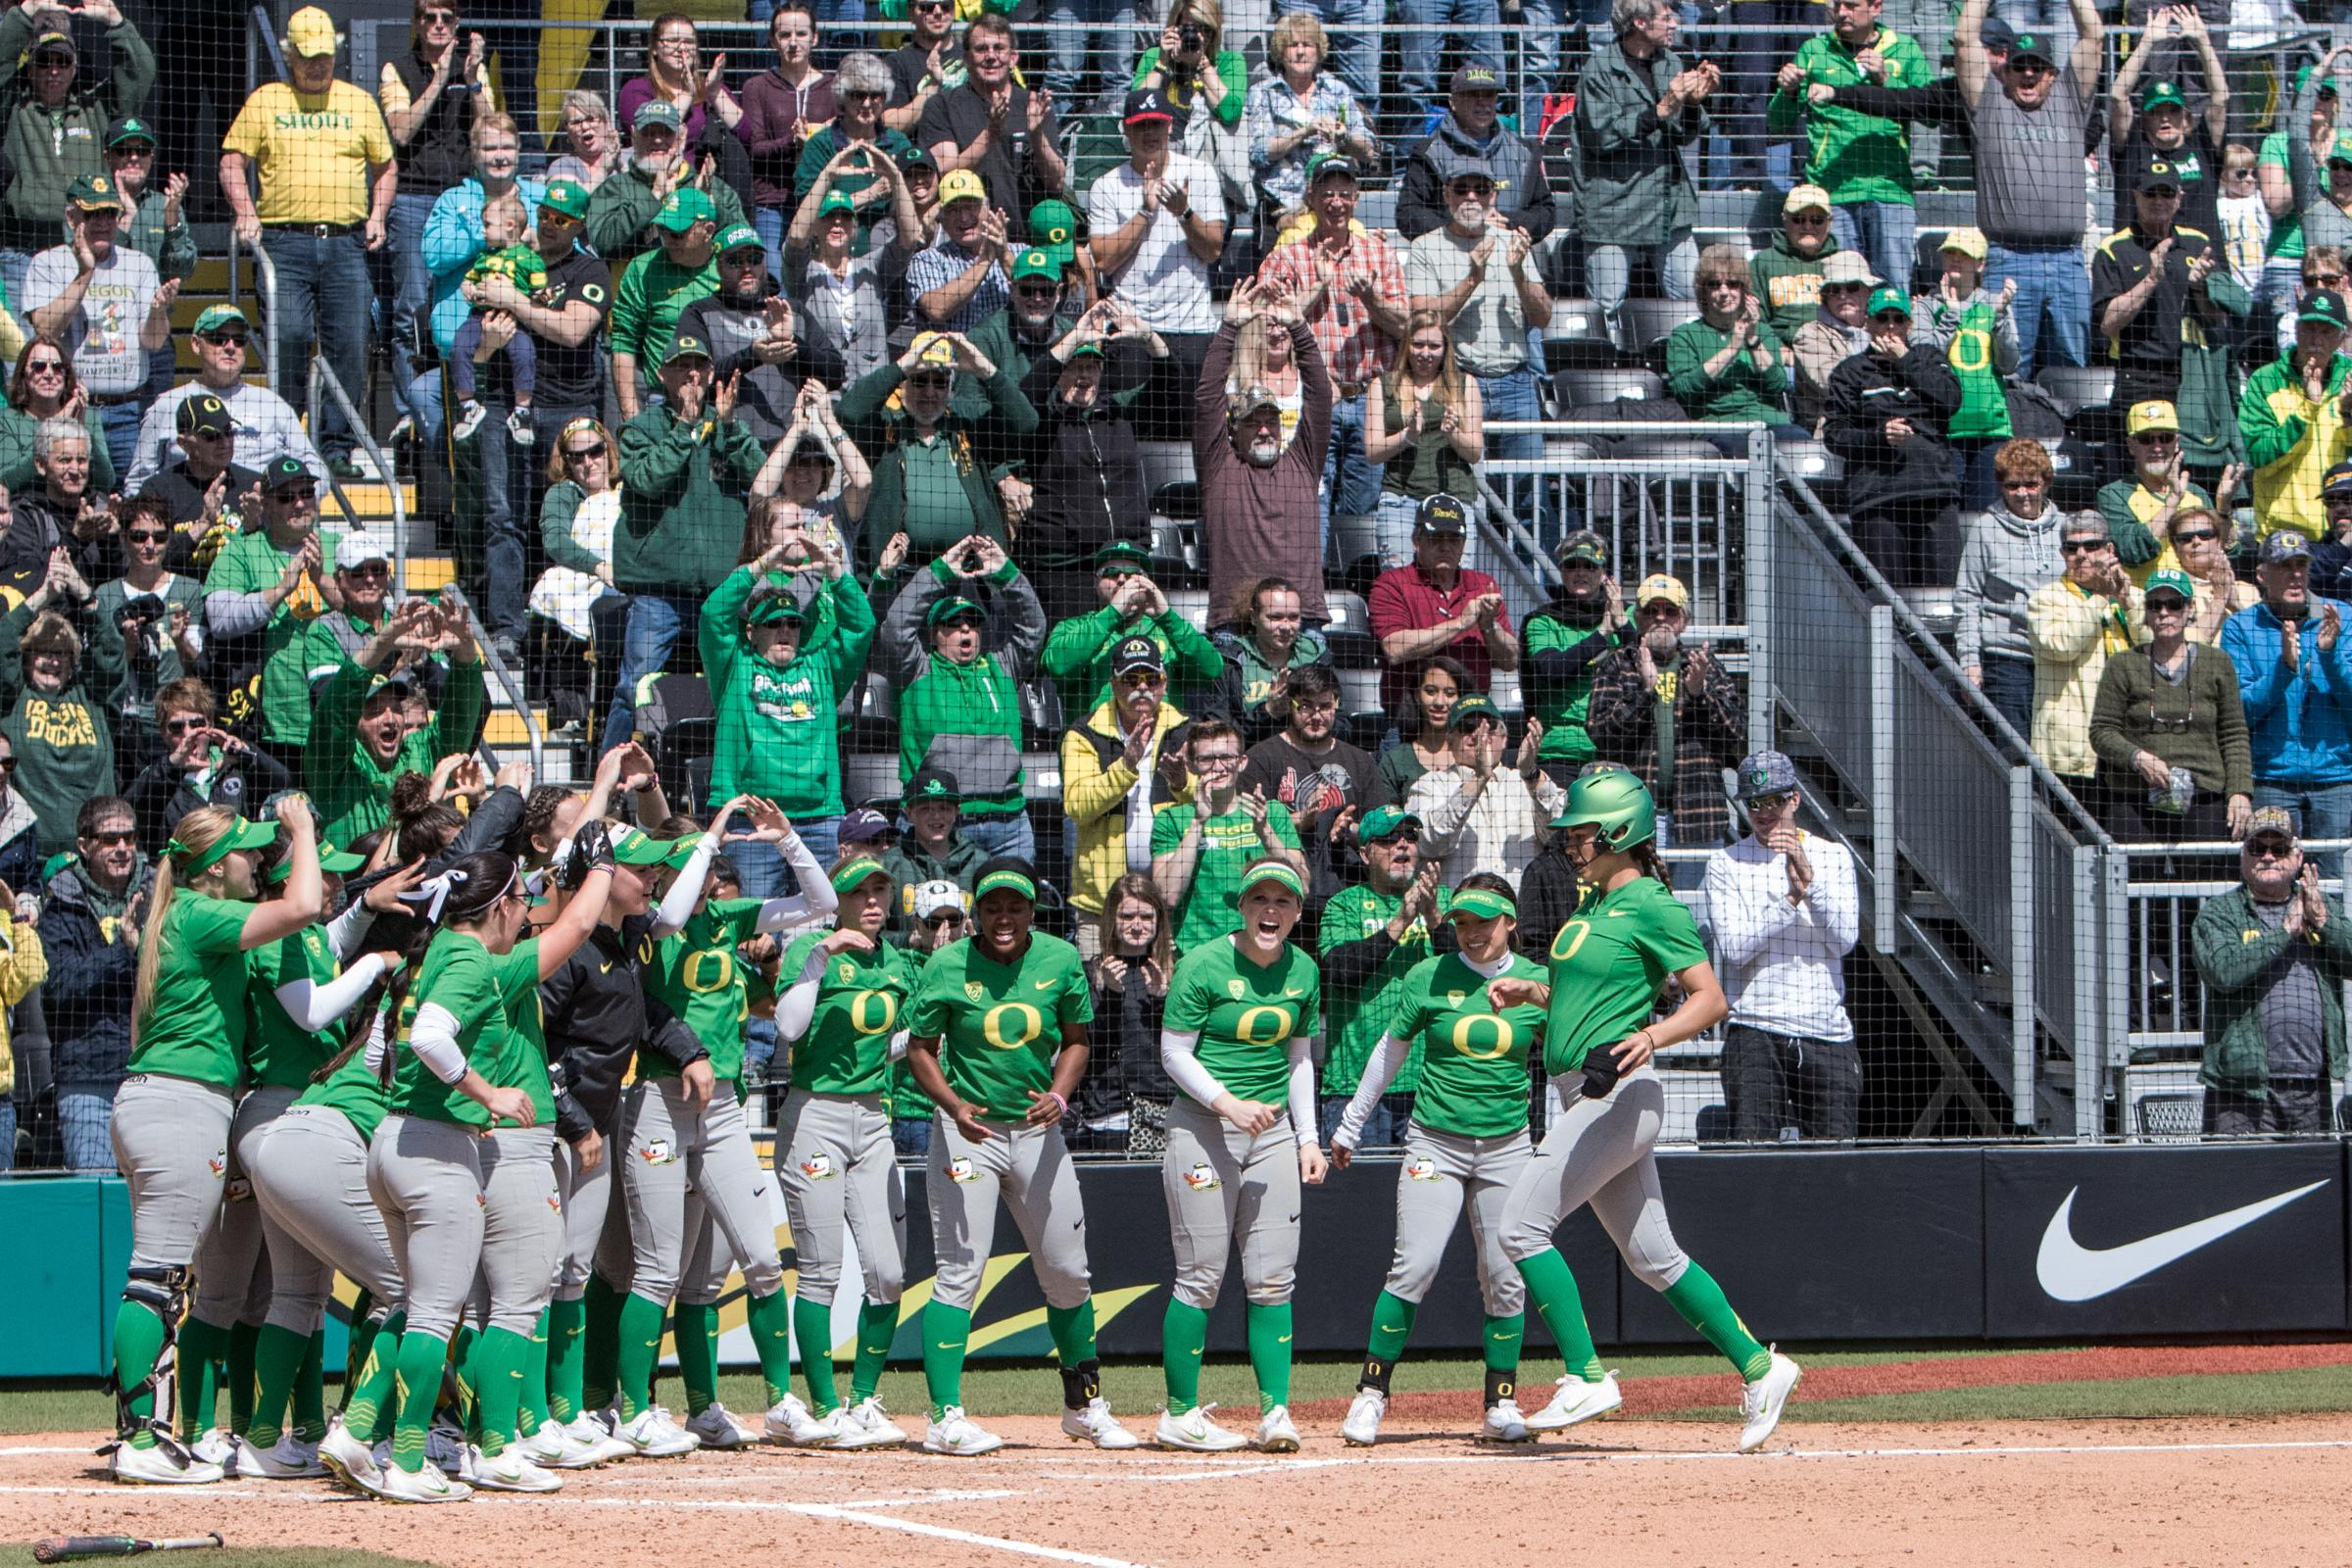 The Oregon Ducks celebrate teammate Niiki Udria (#3) as she finishes rounding the bases following a two-run homerun. In the final game of a three-game series, the University of Washington Huskies defeated the Oregon Ducks 5-3.  The Ducks led through the bottom of the 7th inning, but Washington's Morganne Flores (#47) tied it up with a two-run double.  Flores drove in two more runs in the 9th to take the lead.  Photo by Austin Hicks, Oregon News Lab